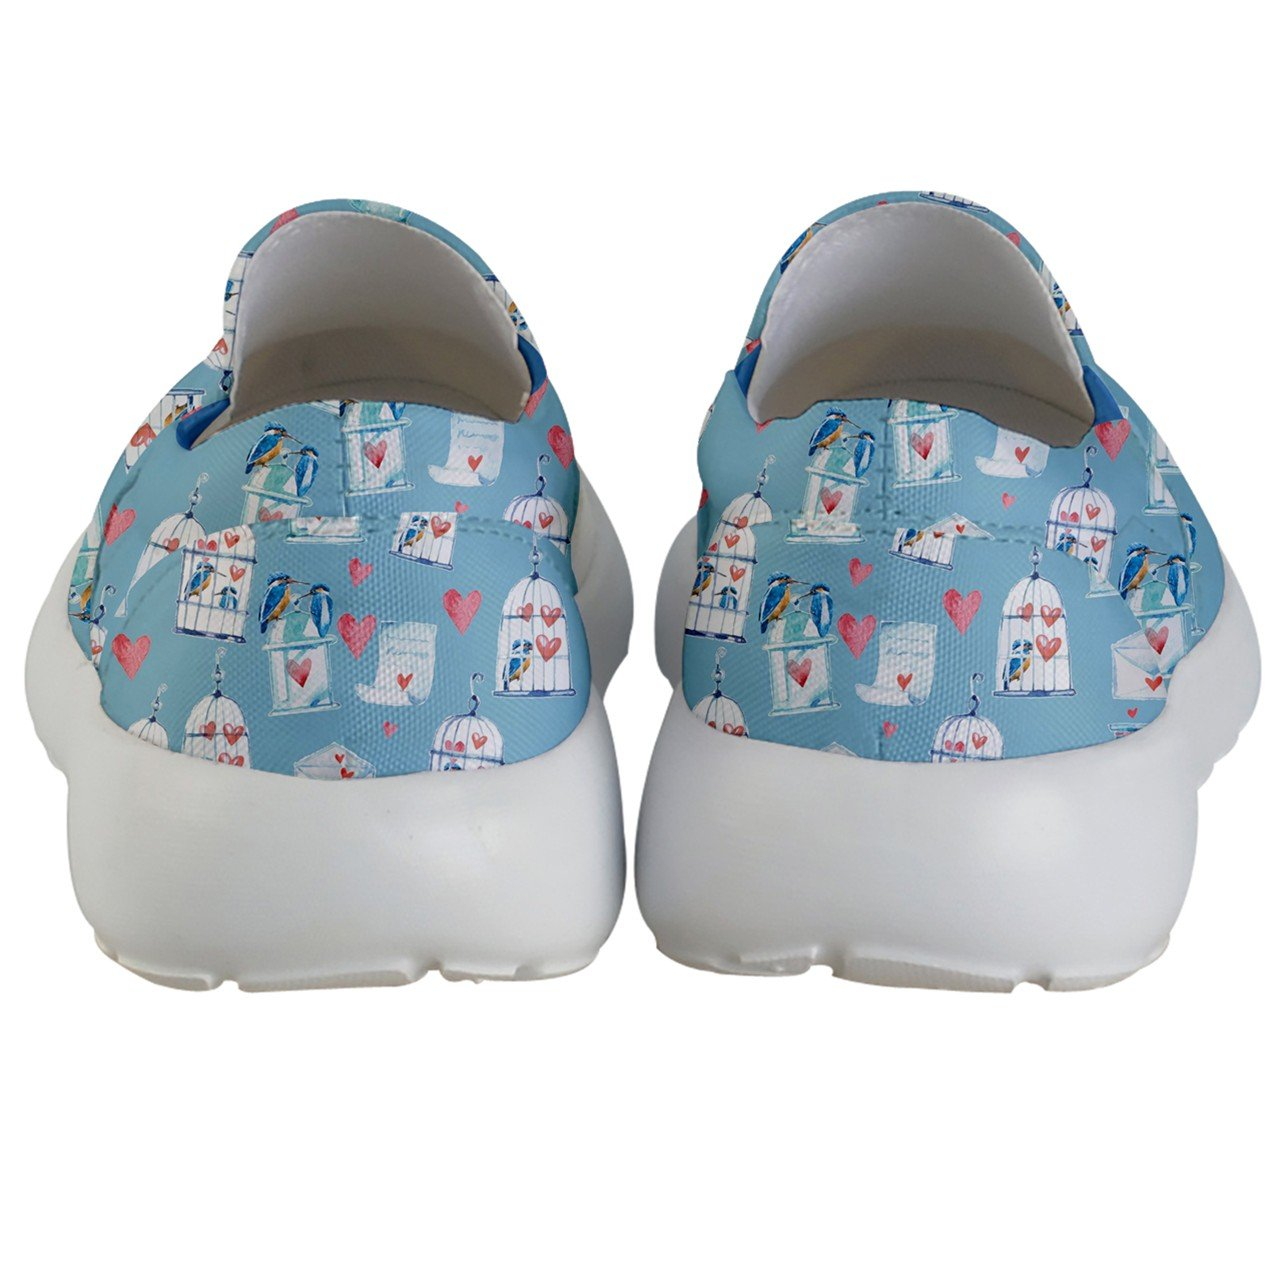 PattyCandy Kids & Toddlers Slip On Love Bird & Cage Lightweight Shoes-US 5.5Y by PattyCandy (Image #4)